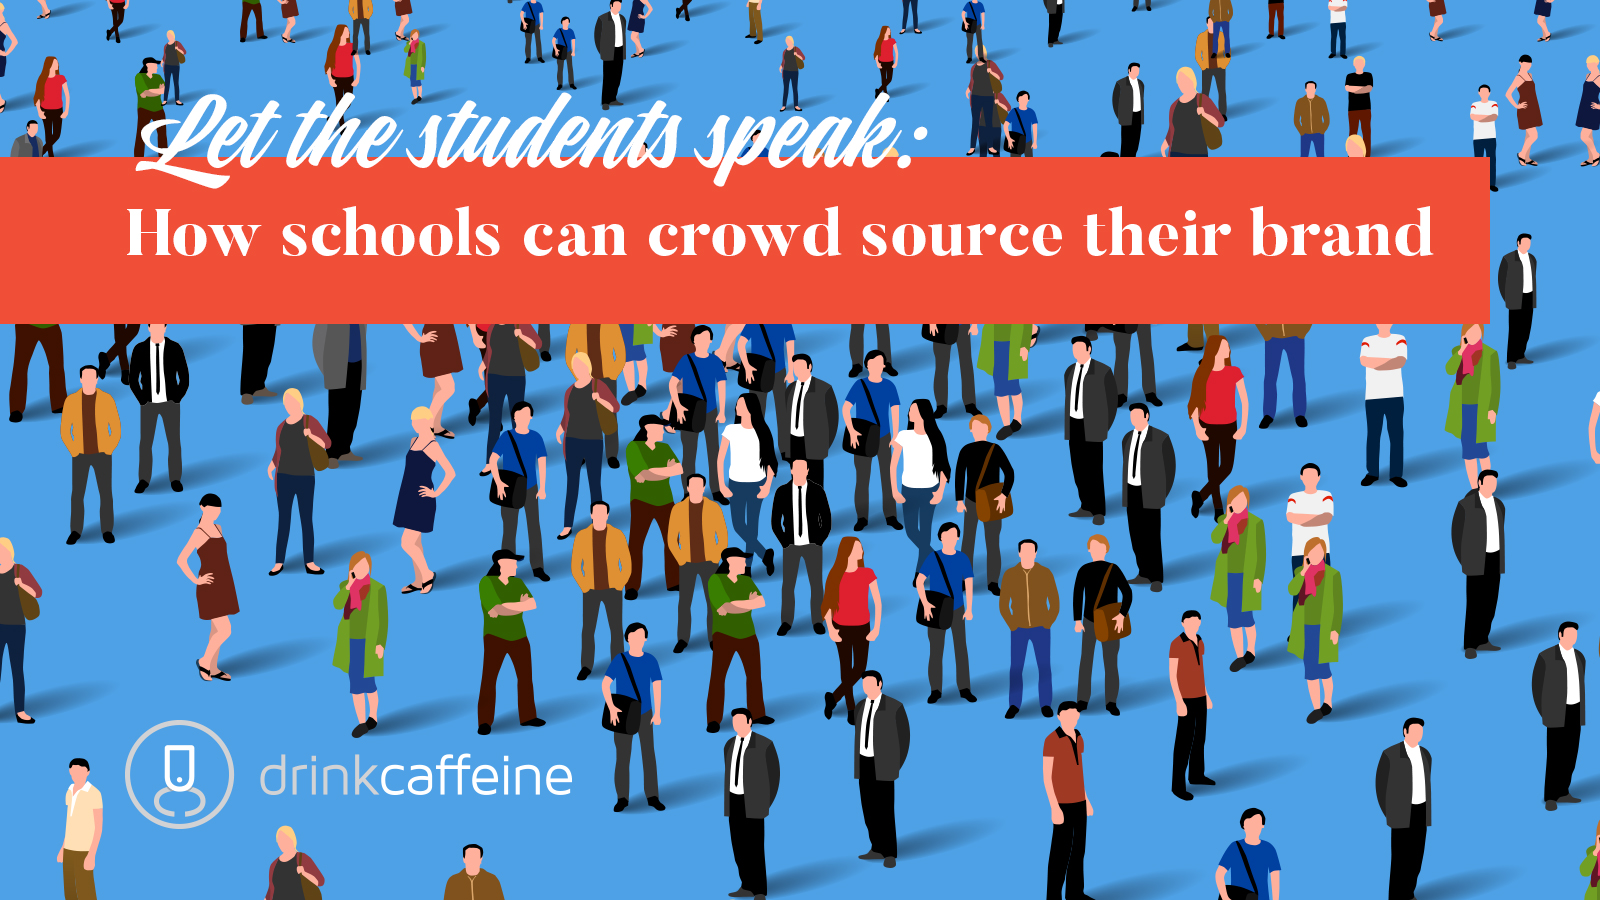 Let the students speak: How schools can crowd source their brand blog image